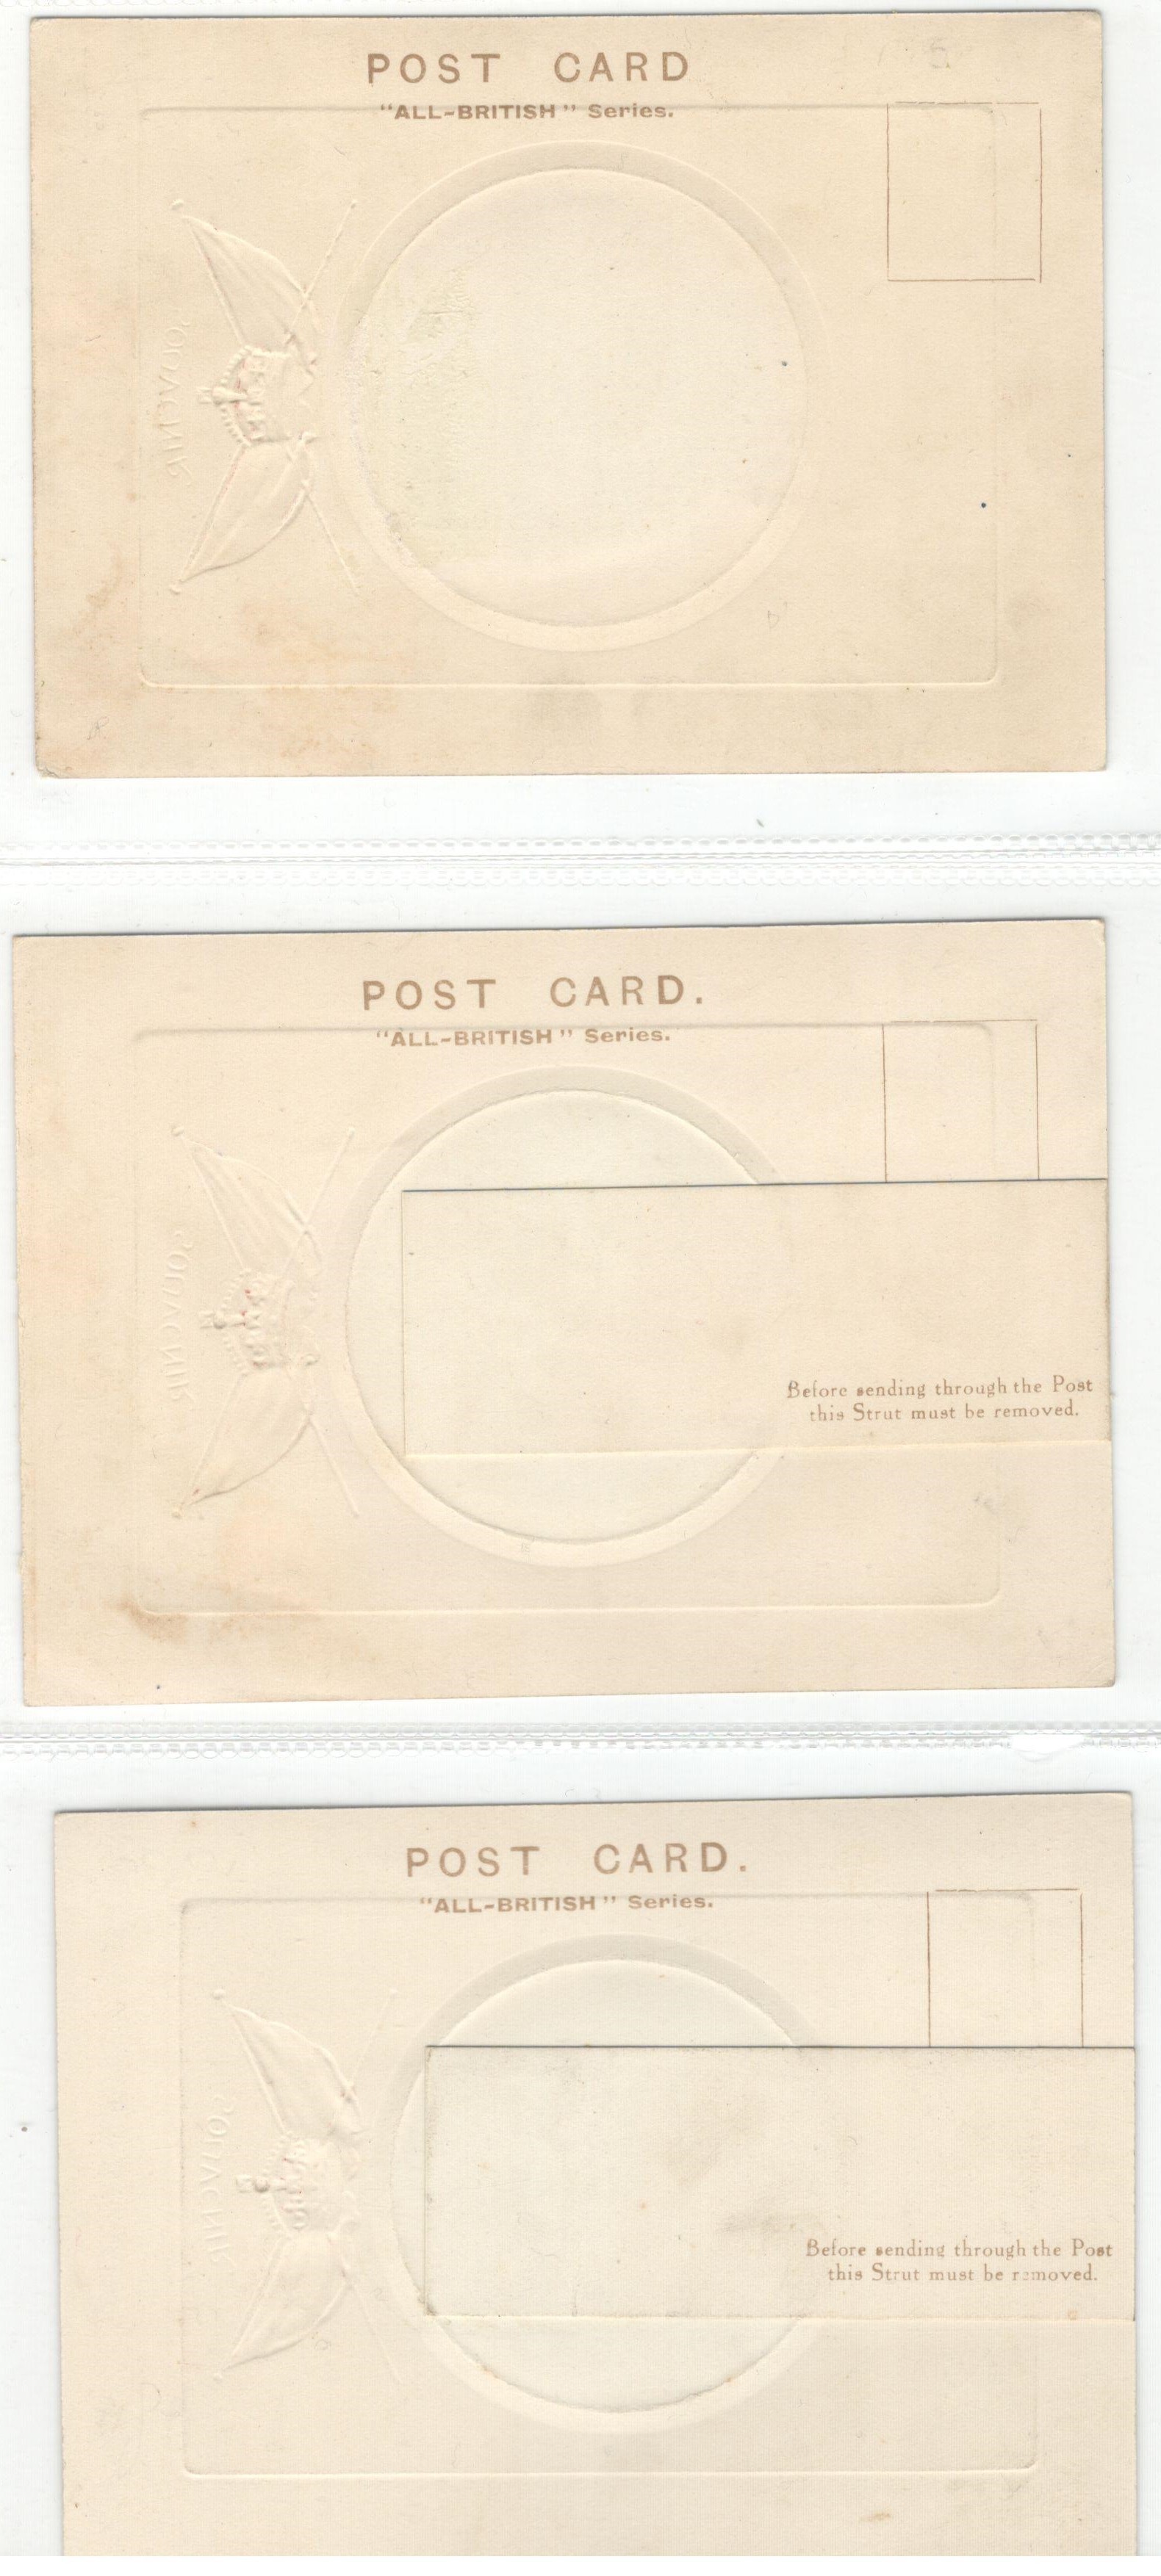 THREE SOUVENIR SMALL SIZE POSTCARDS HIS MAJESTY KING GEORGE V & QUEEN MARY - Image 2 of 2